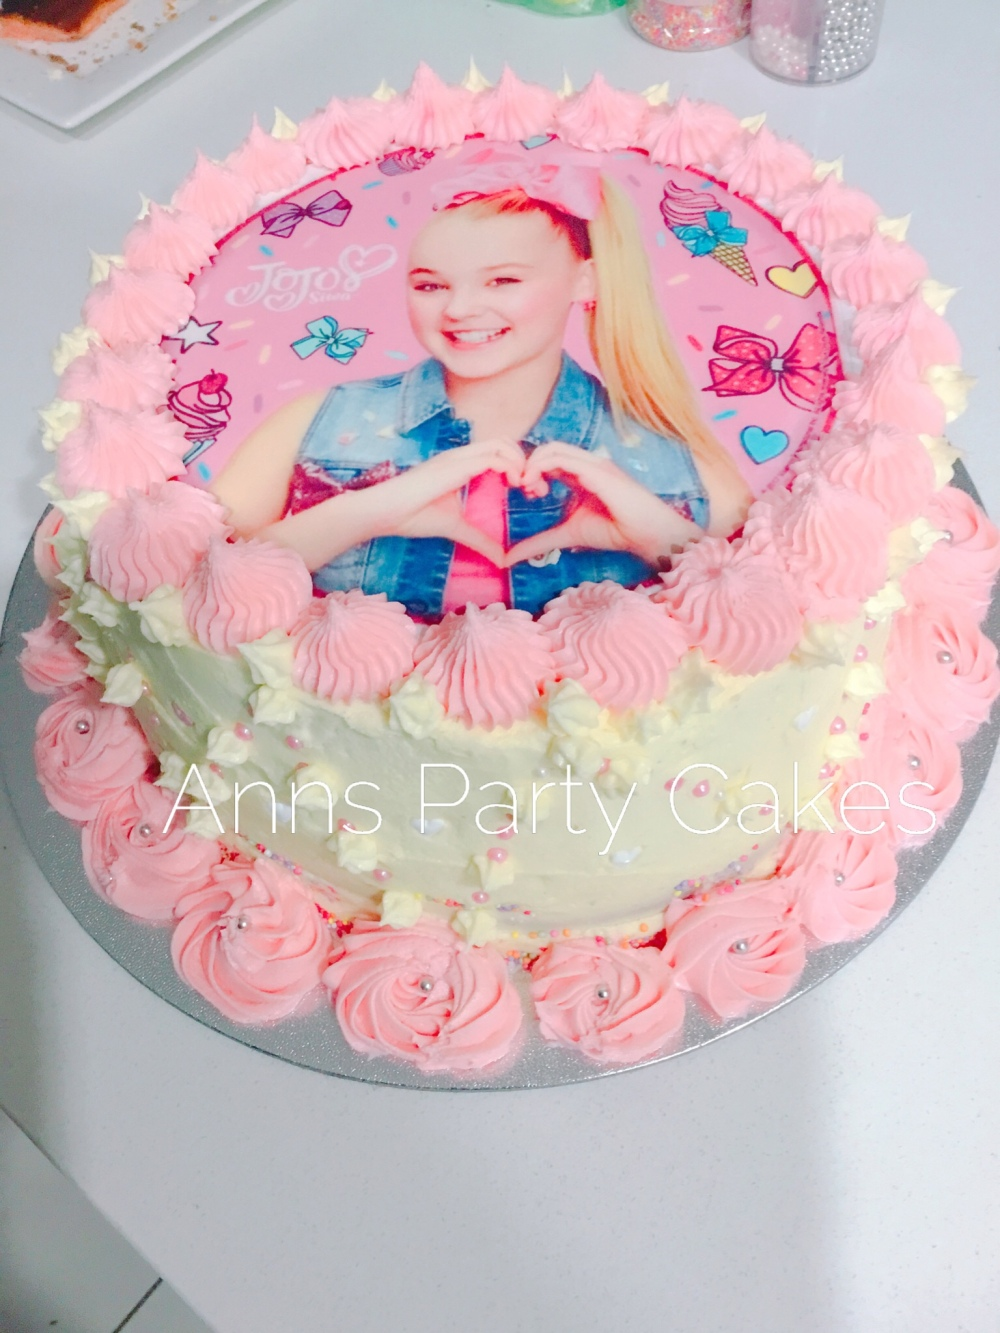 Jo Jo Siwa Cake Decoration Jojo Siwa Party Cake African Diaspora